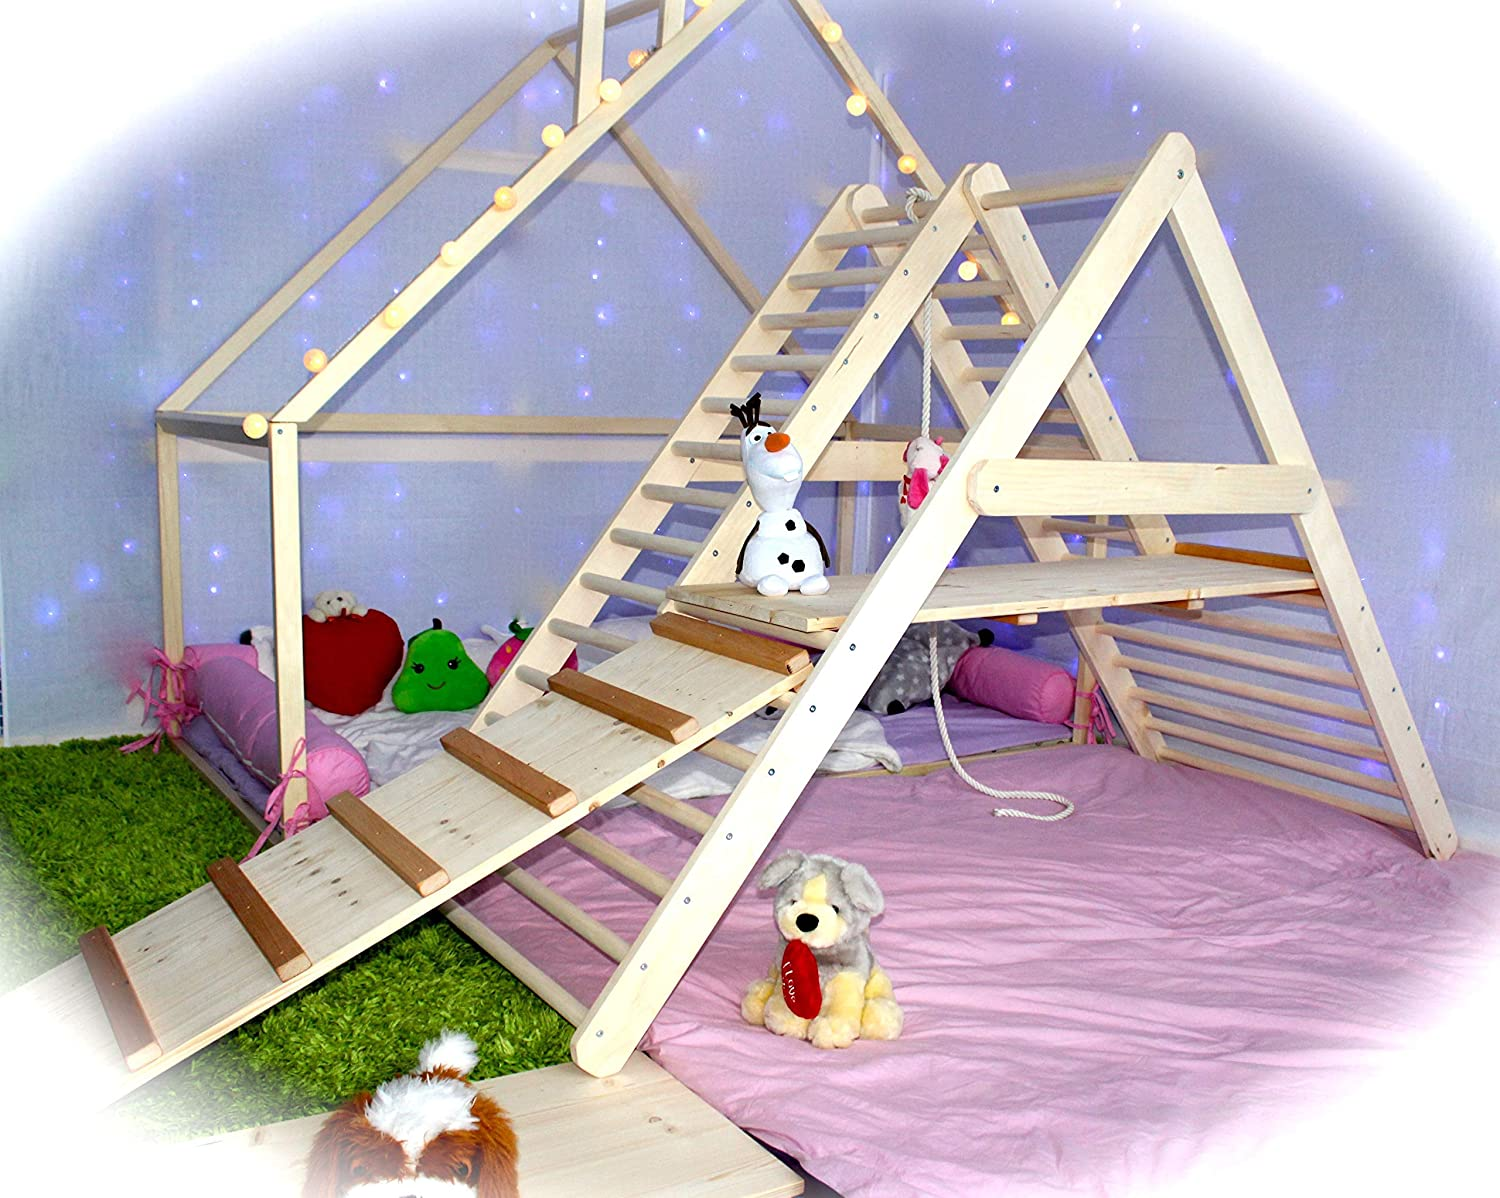 UGi-BUGi gym for toddlers, Step Triangle, Climbing ladder for toddler, Climbing triangle for toddlers, Triangle with ramp, Toddler gym